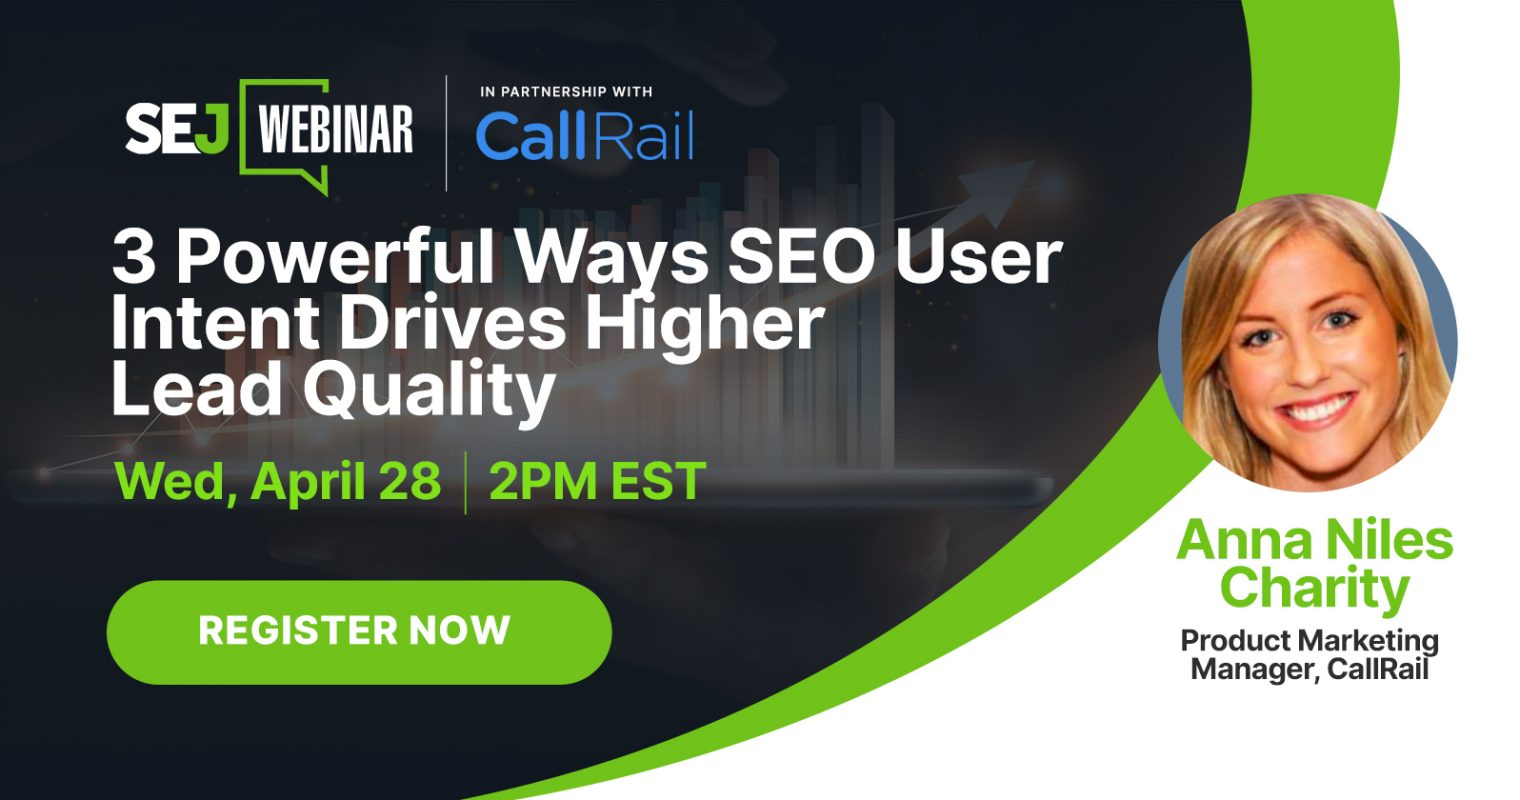 3 Tips to Boost Lead Quality with SEO User Intent [Webinar]